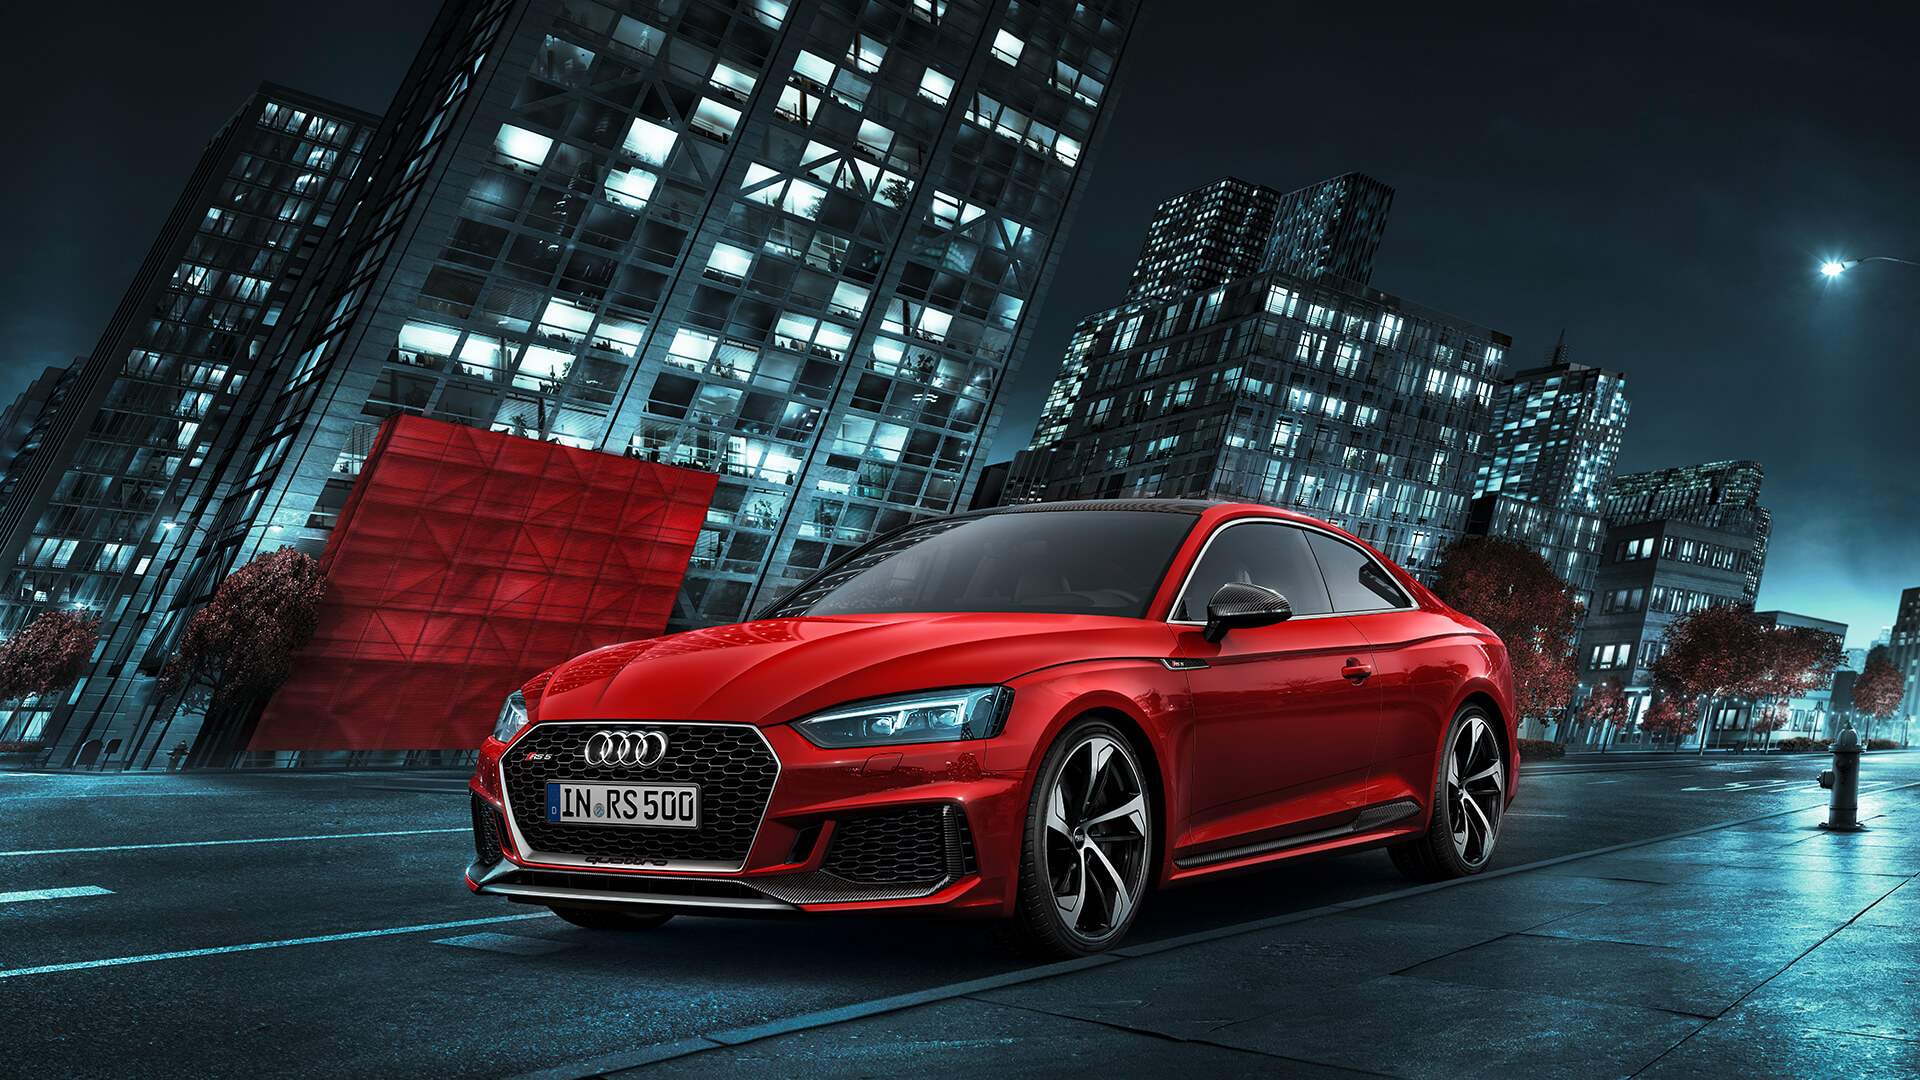 Beautiful new Audi RS5 coupe in red